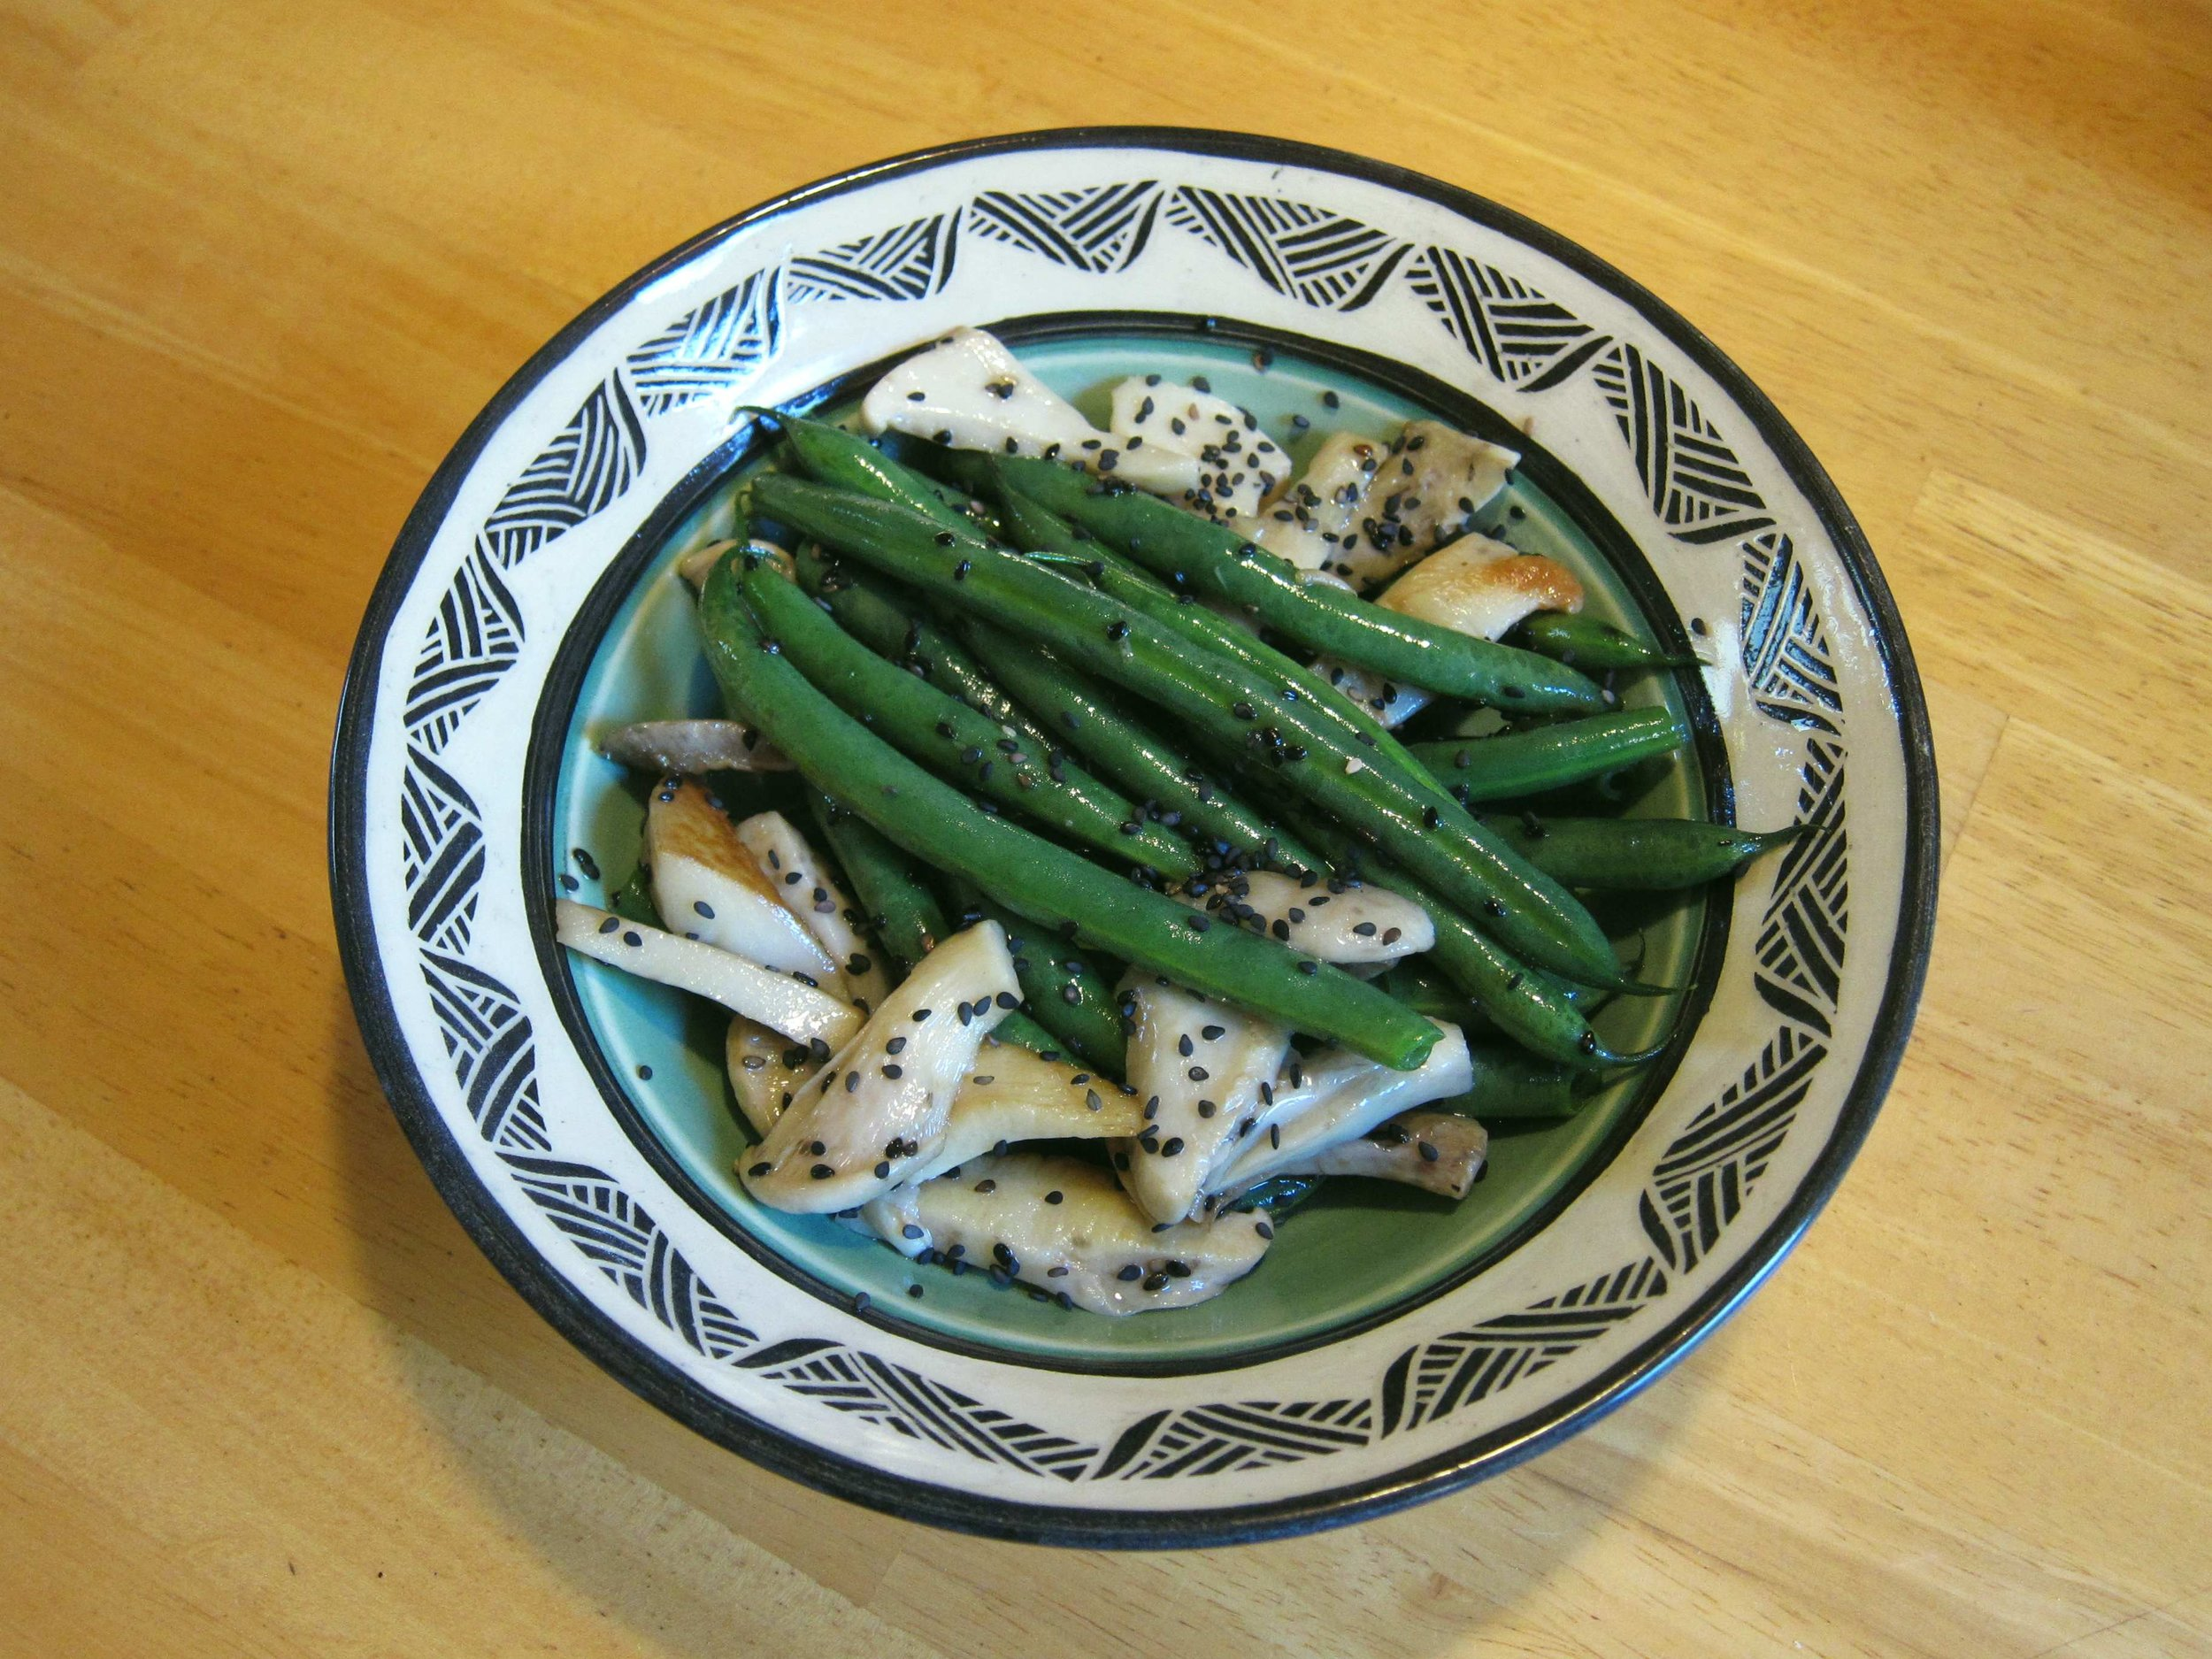 Nebro-with-green-beans.jpg